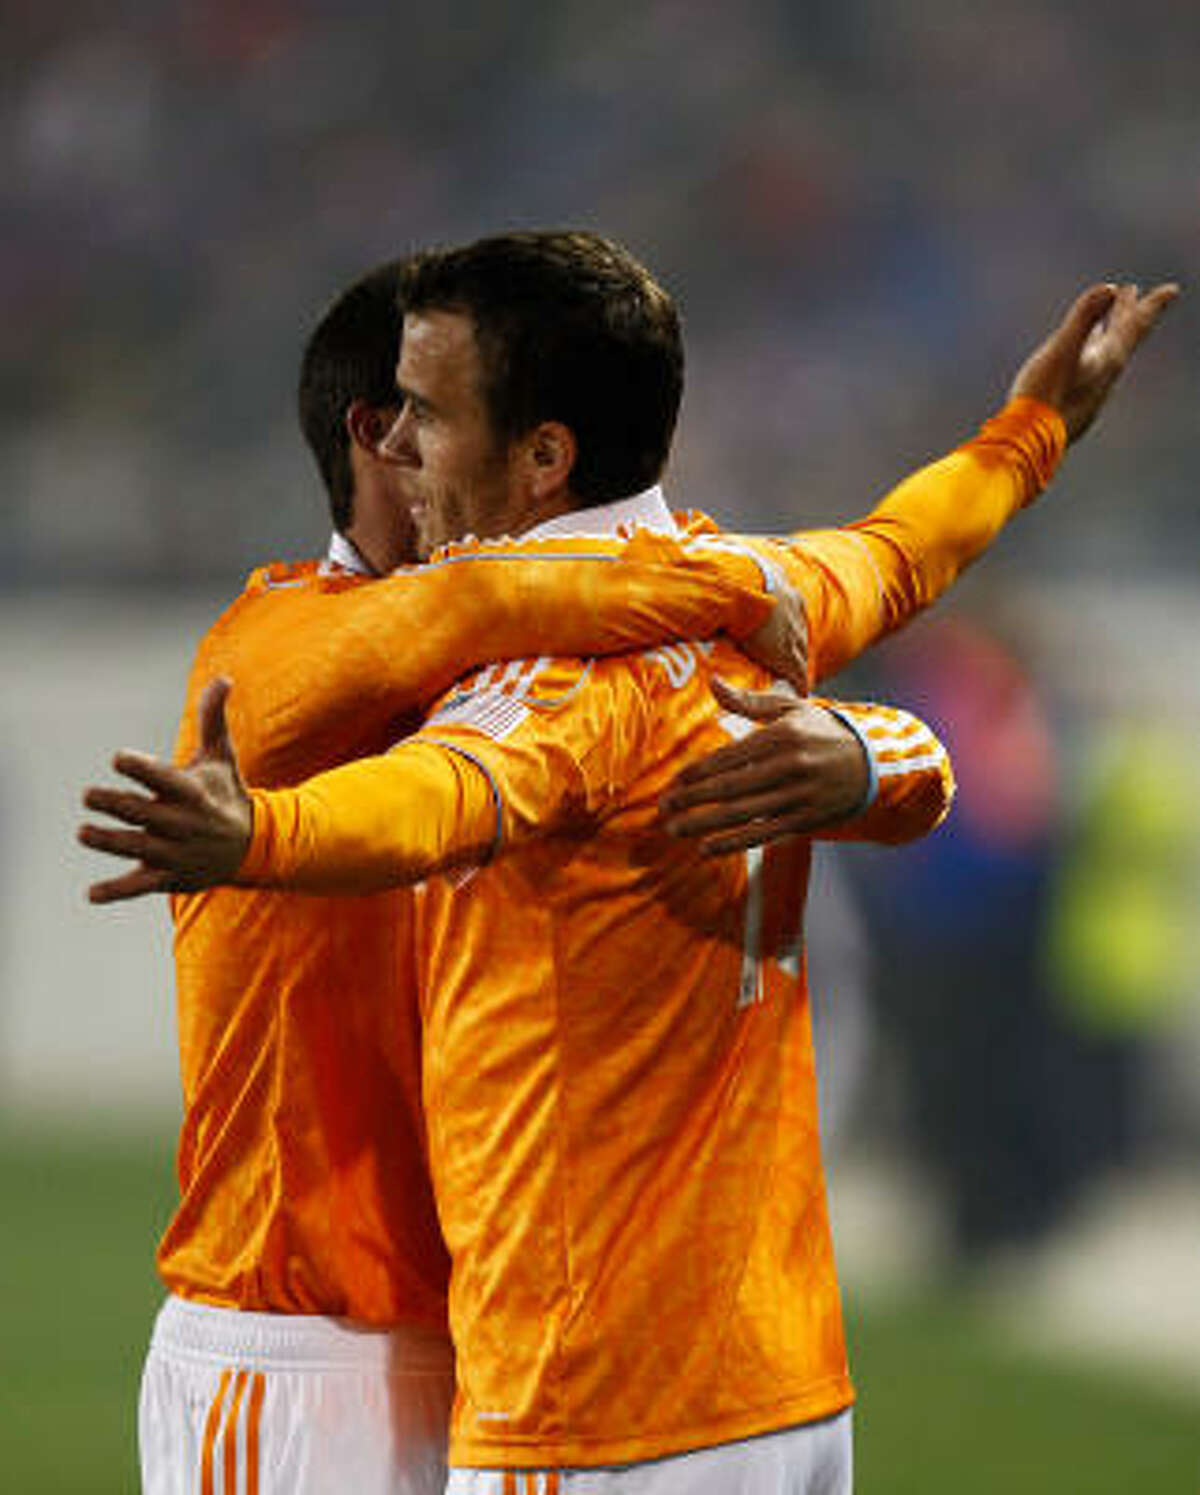 Dynamo forward Cameron Weaver, right, celebrates his game-tying goal in the second half against the New York Red Bulls.